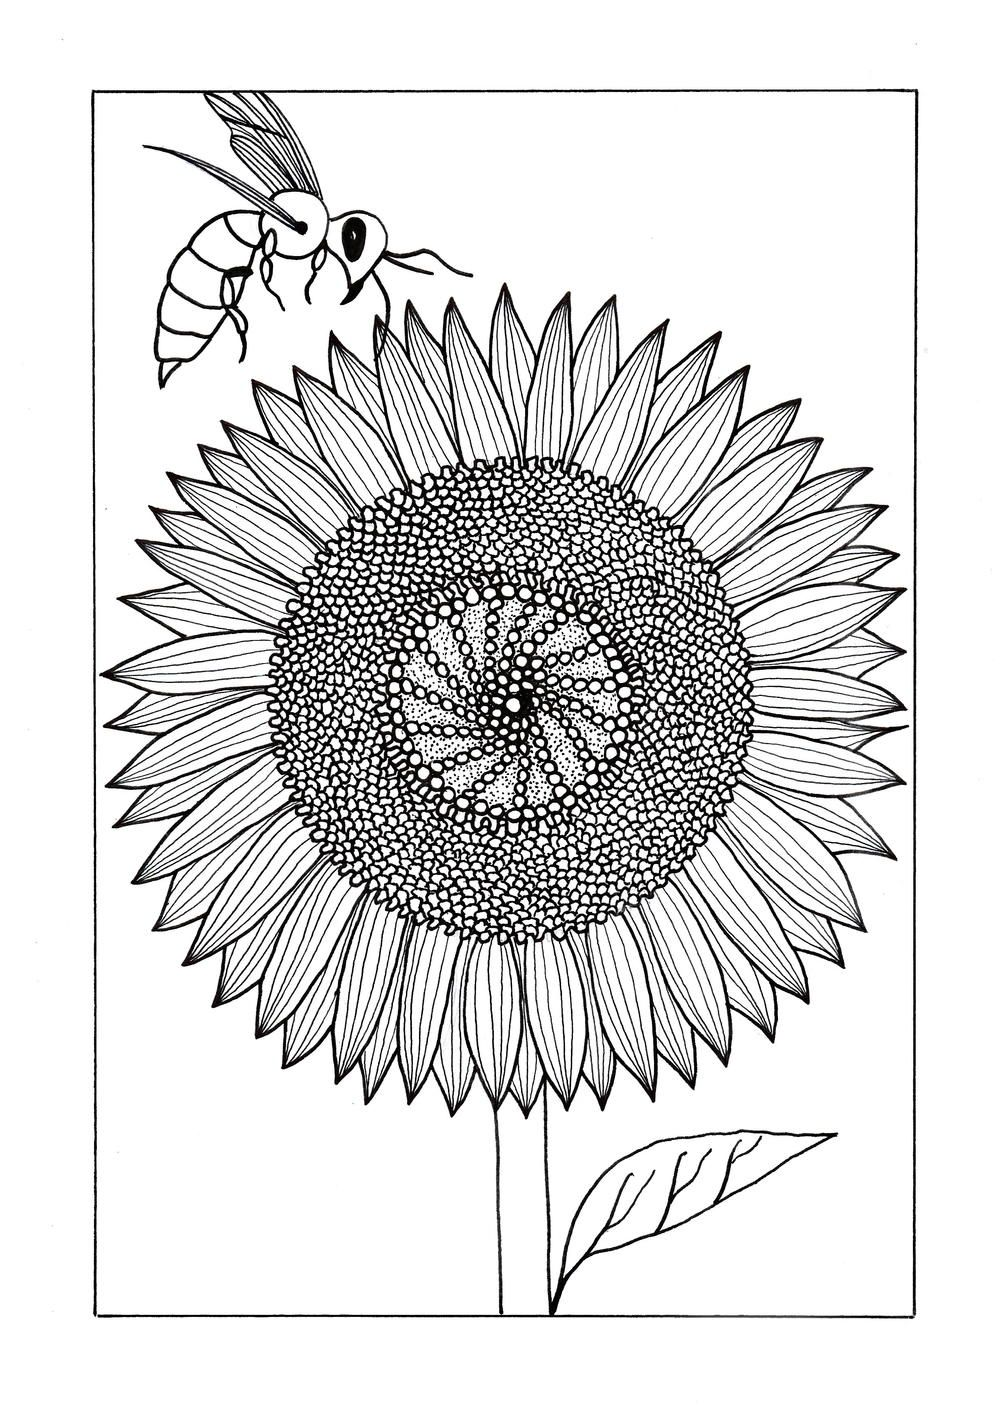 Vividly Intricate Sunflower Adult Coloring Page Sunflower